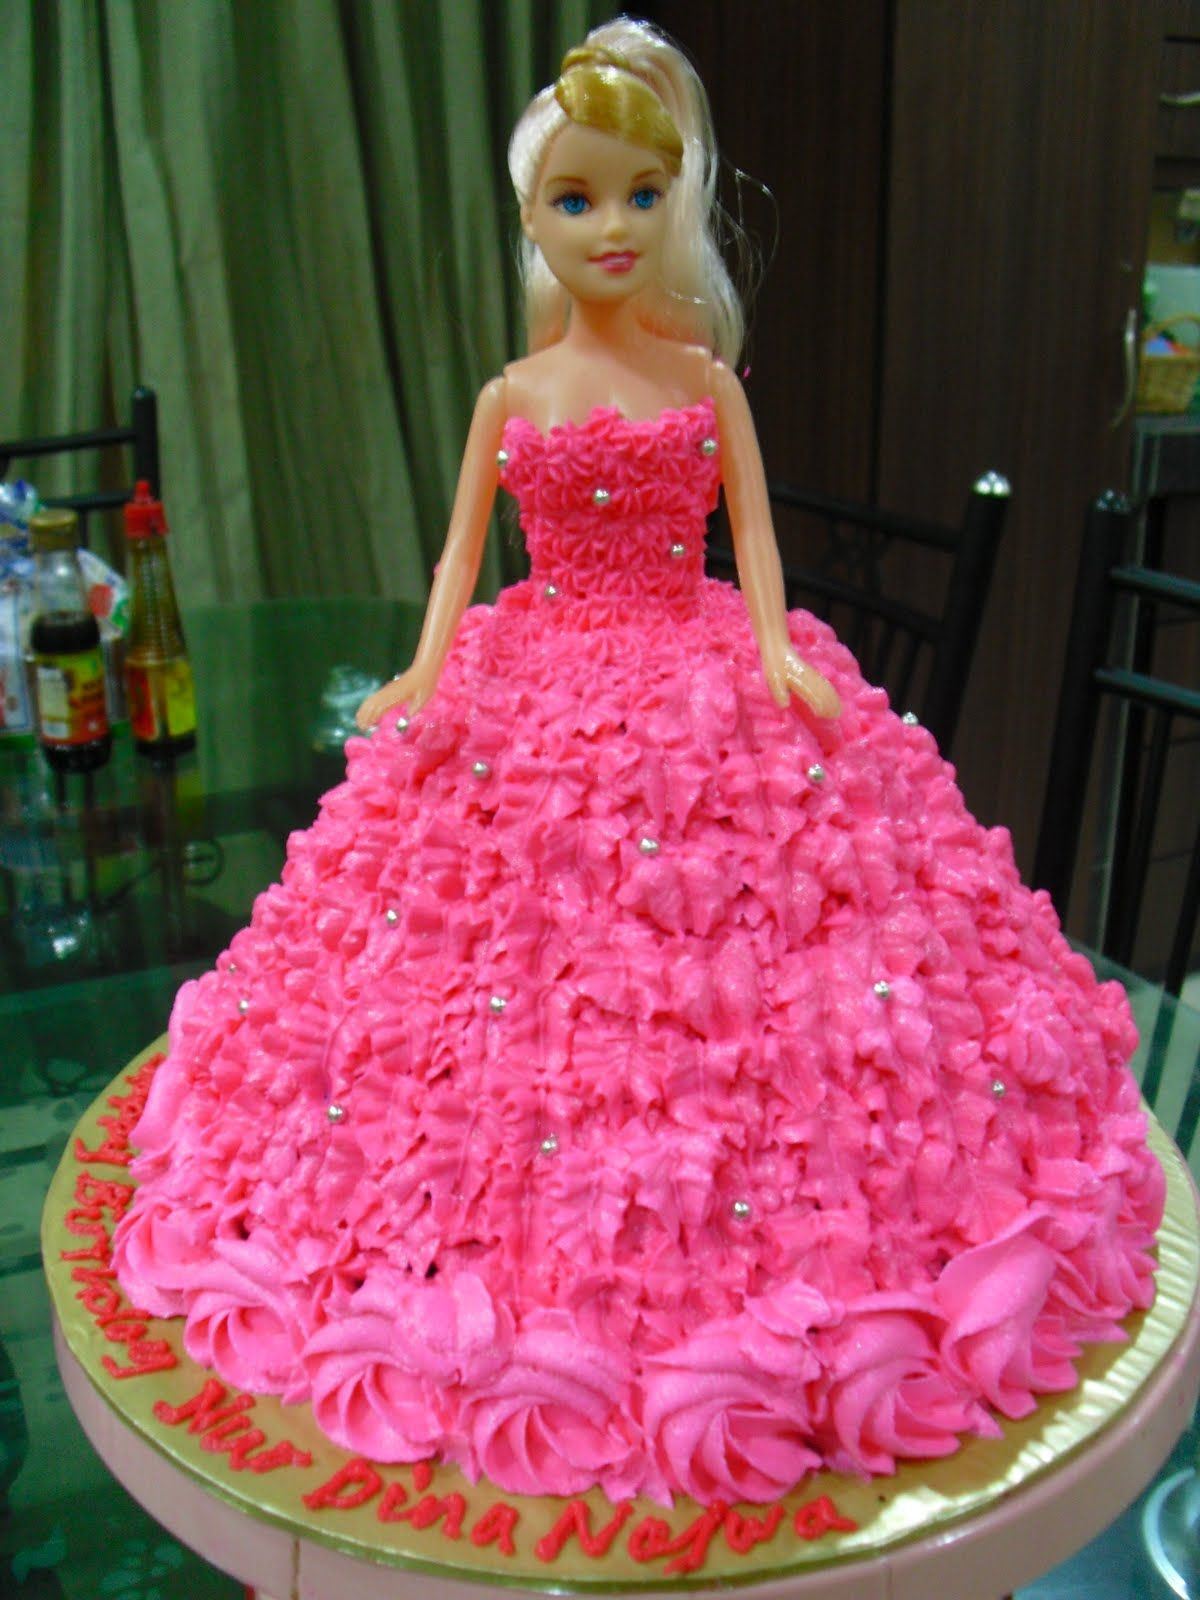 Images Of Barbie Birthday Cake : barbie doll cake Barbie doll for the b day girl crafts ...